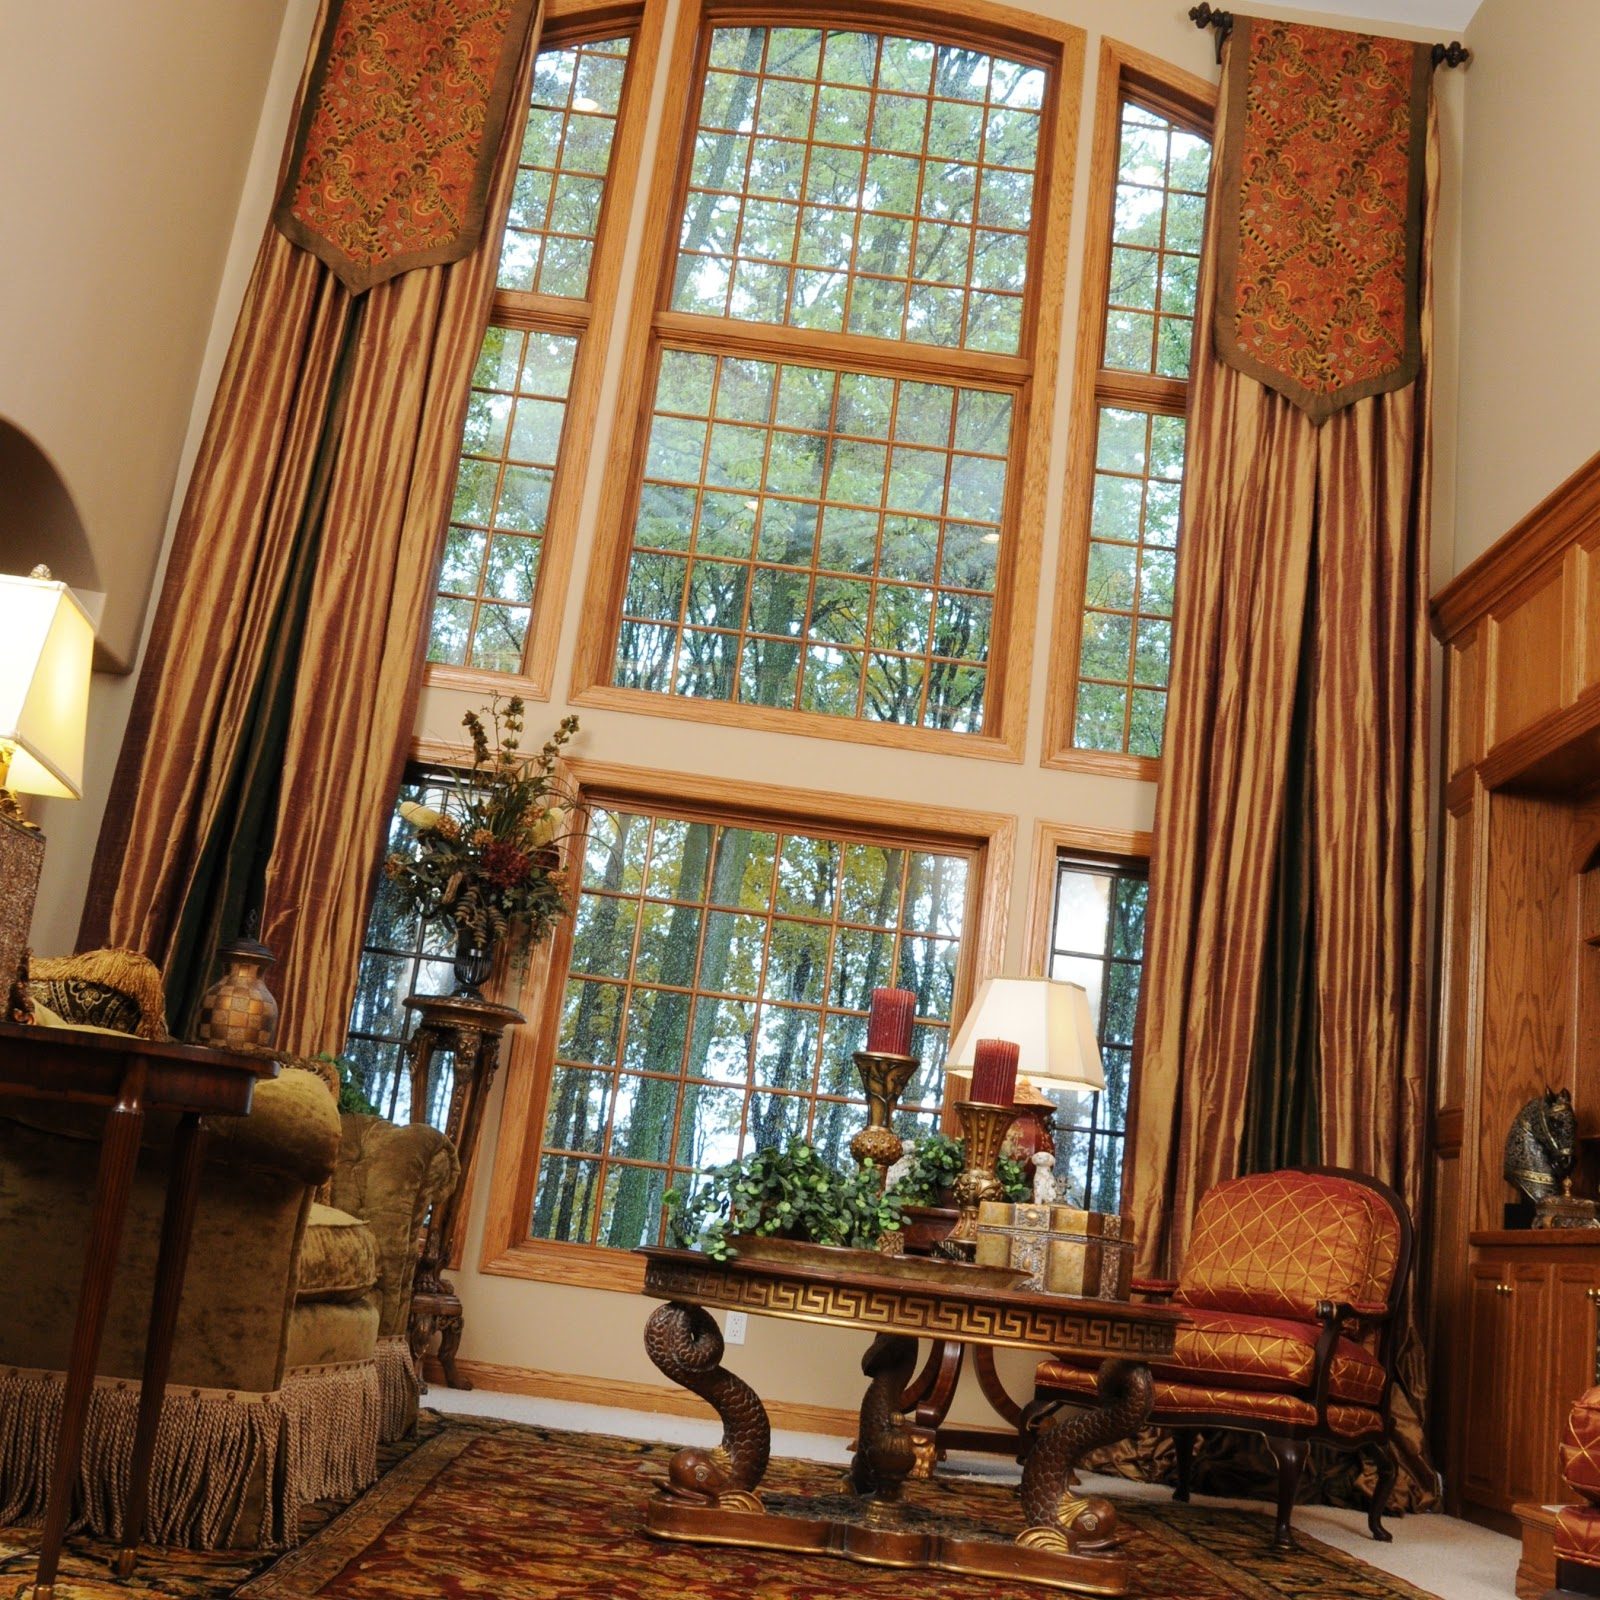 Custom D Ry Panels Curtains Valances And Other Things